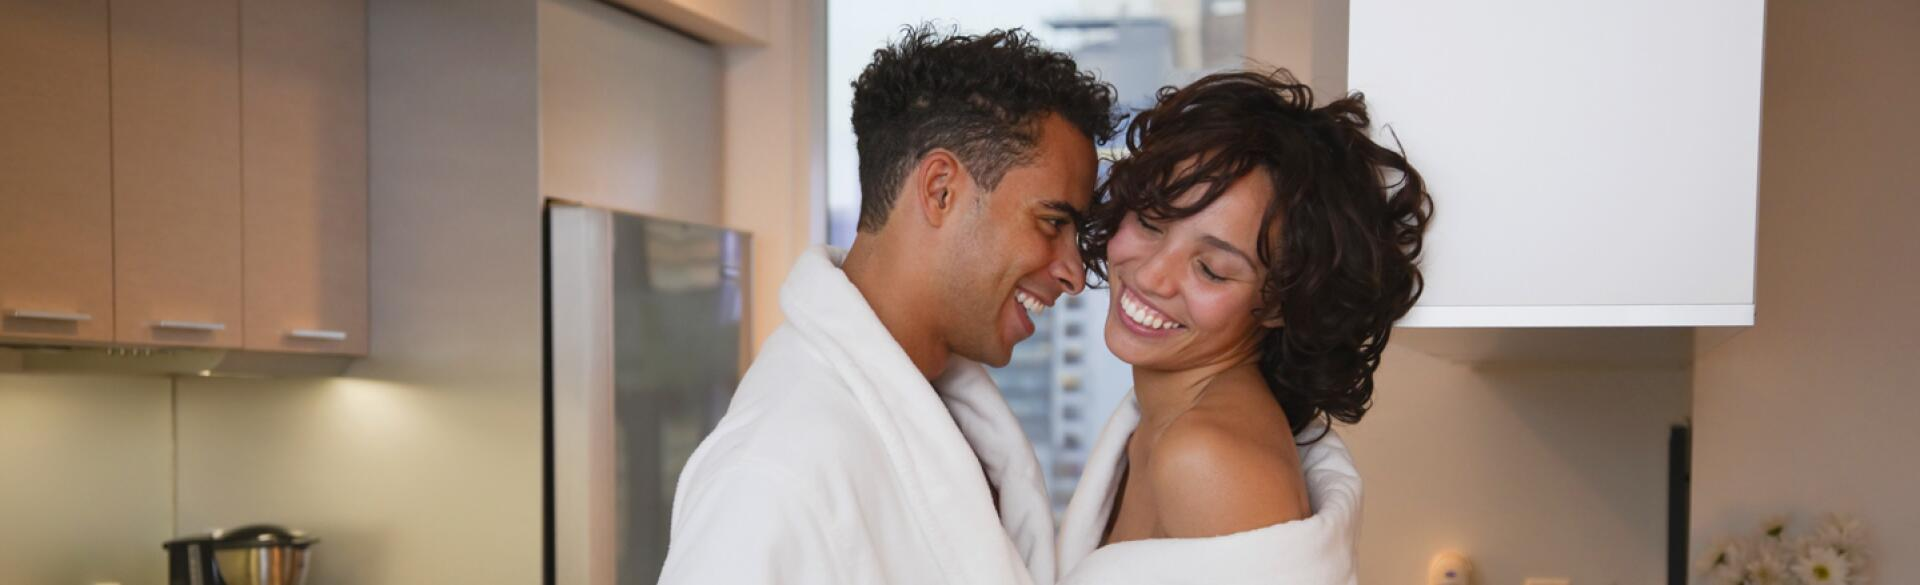 couple, dating, sex, kitchen